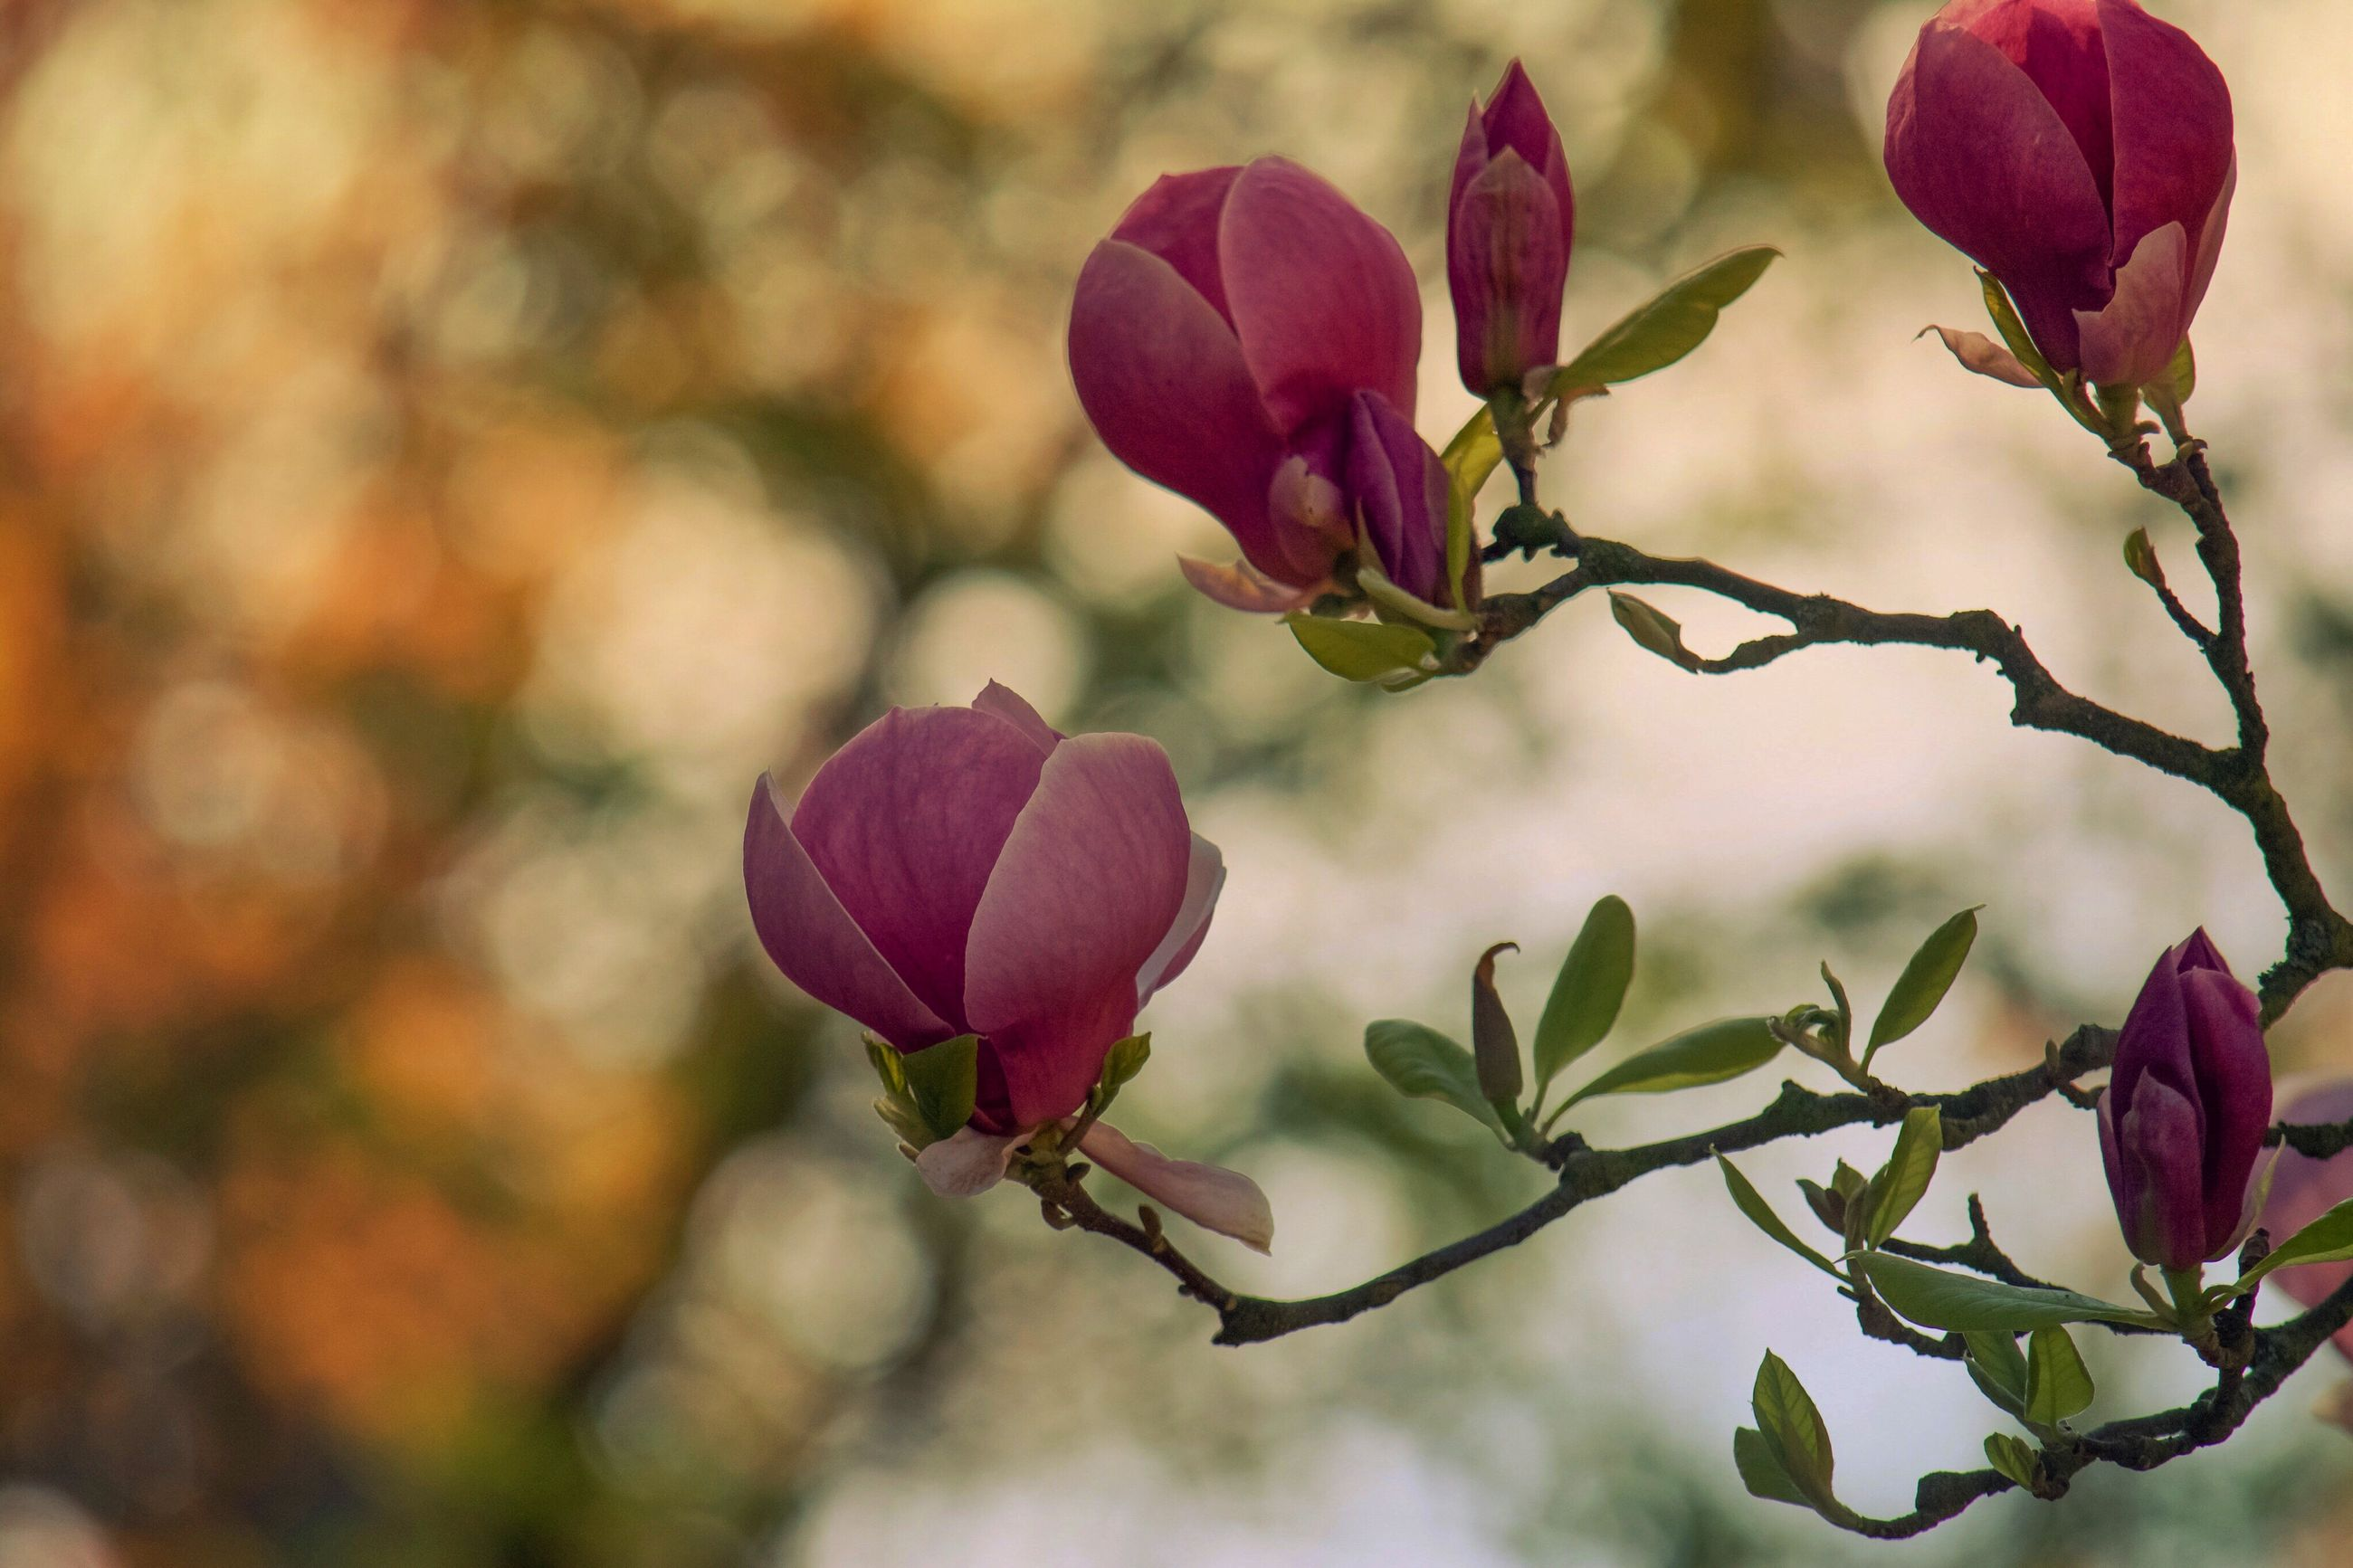 flower, freshness, fragility, growth, pink color, focus on foreground, beauty in nature, bud, petal, close-up, nature, stem, plant, branch, leaf, twig, beginnings, flower head, blooming, new life